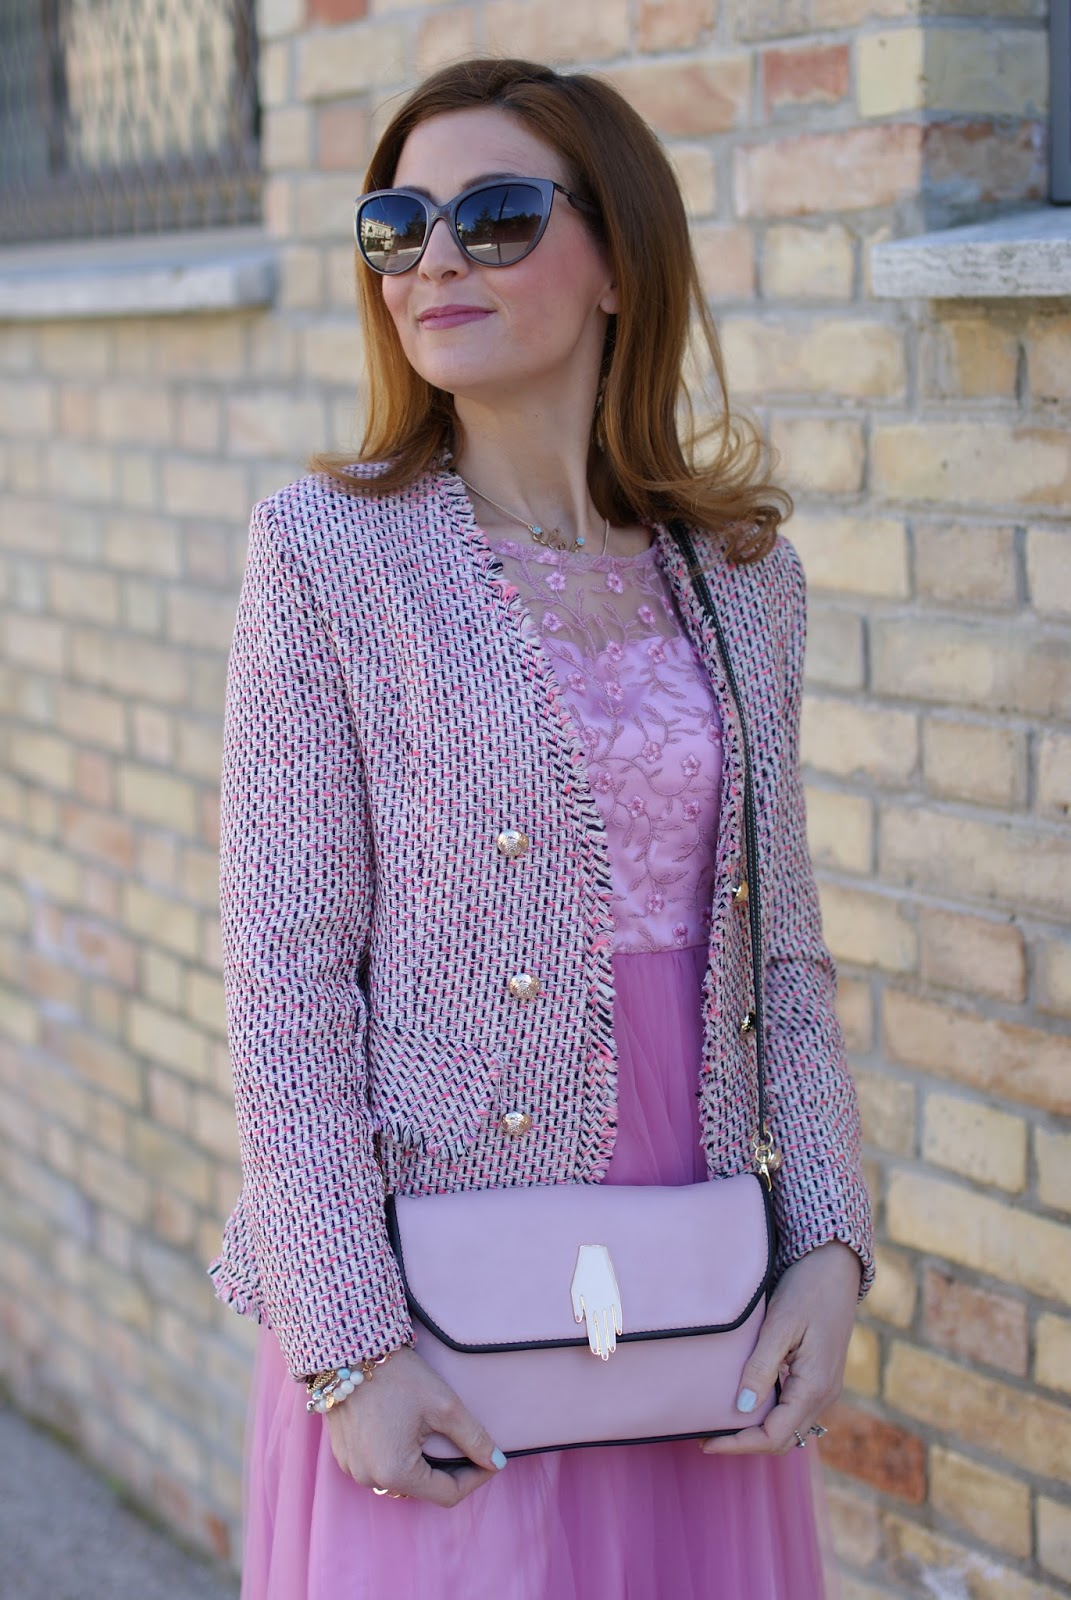 Chanel inspired jacket and Lazzari for a romantic outfit on Fashion and Cookies fashion blog, fashion blogger style